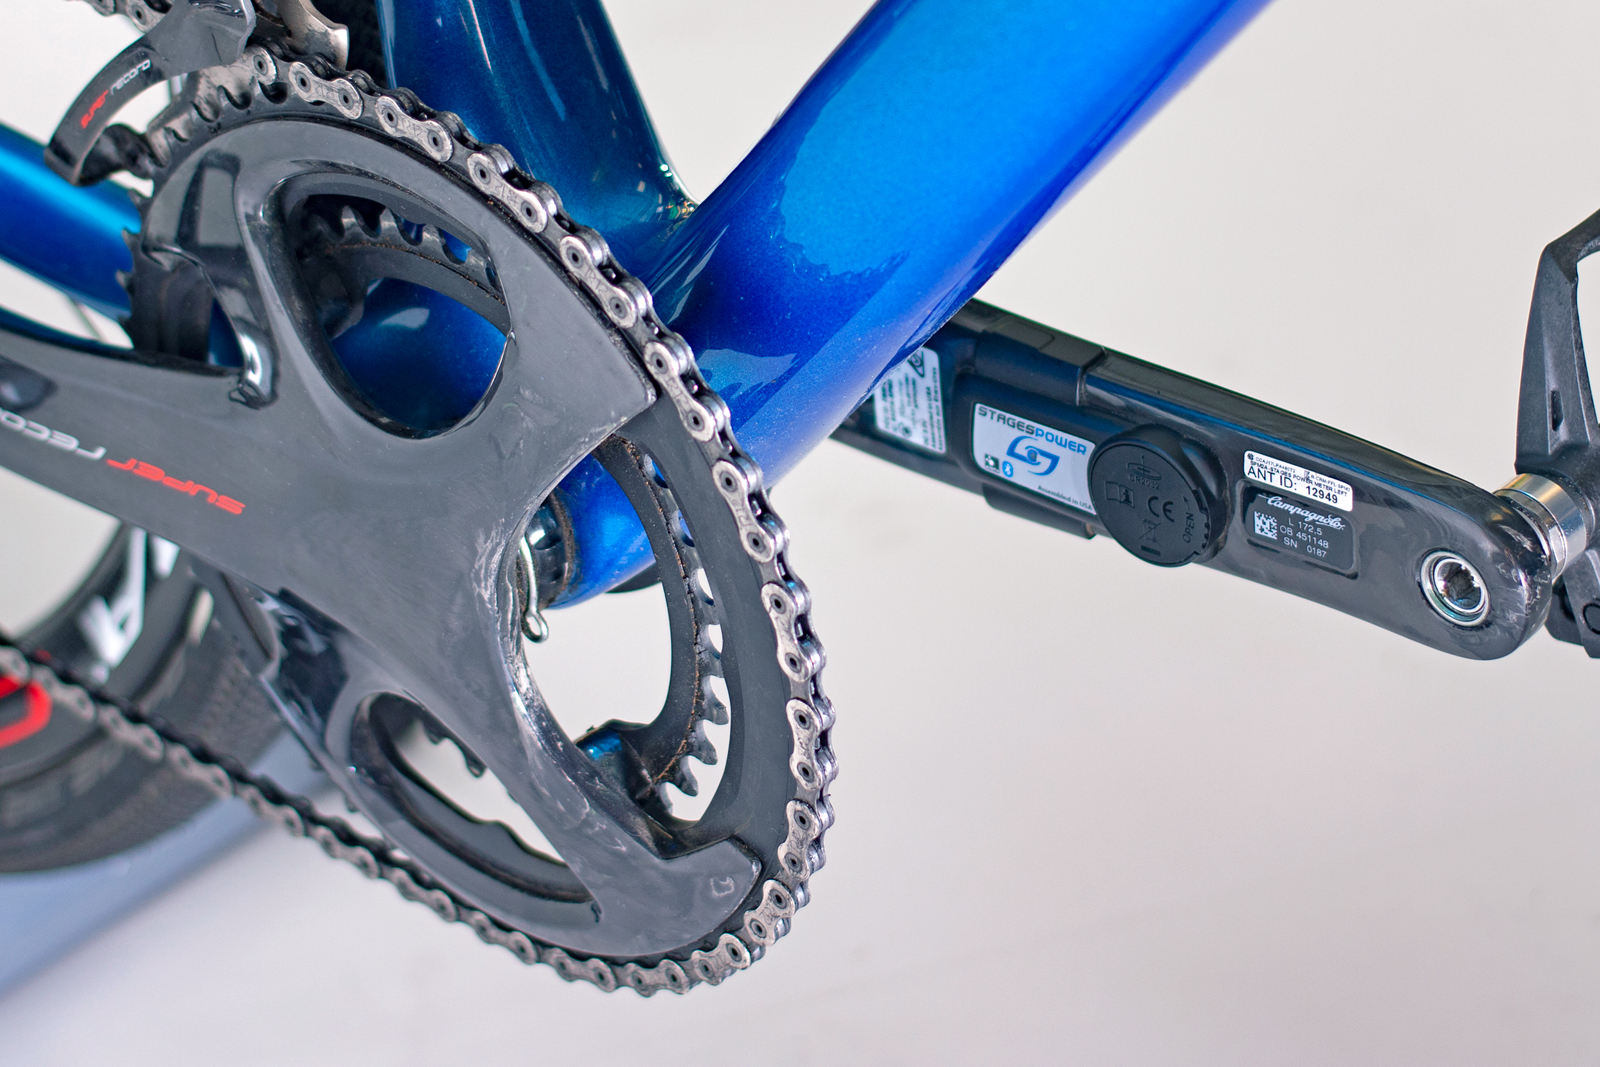 Stages Power LCampagnolo 12-speed crank arms